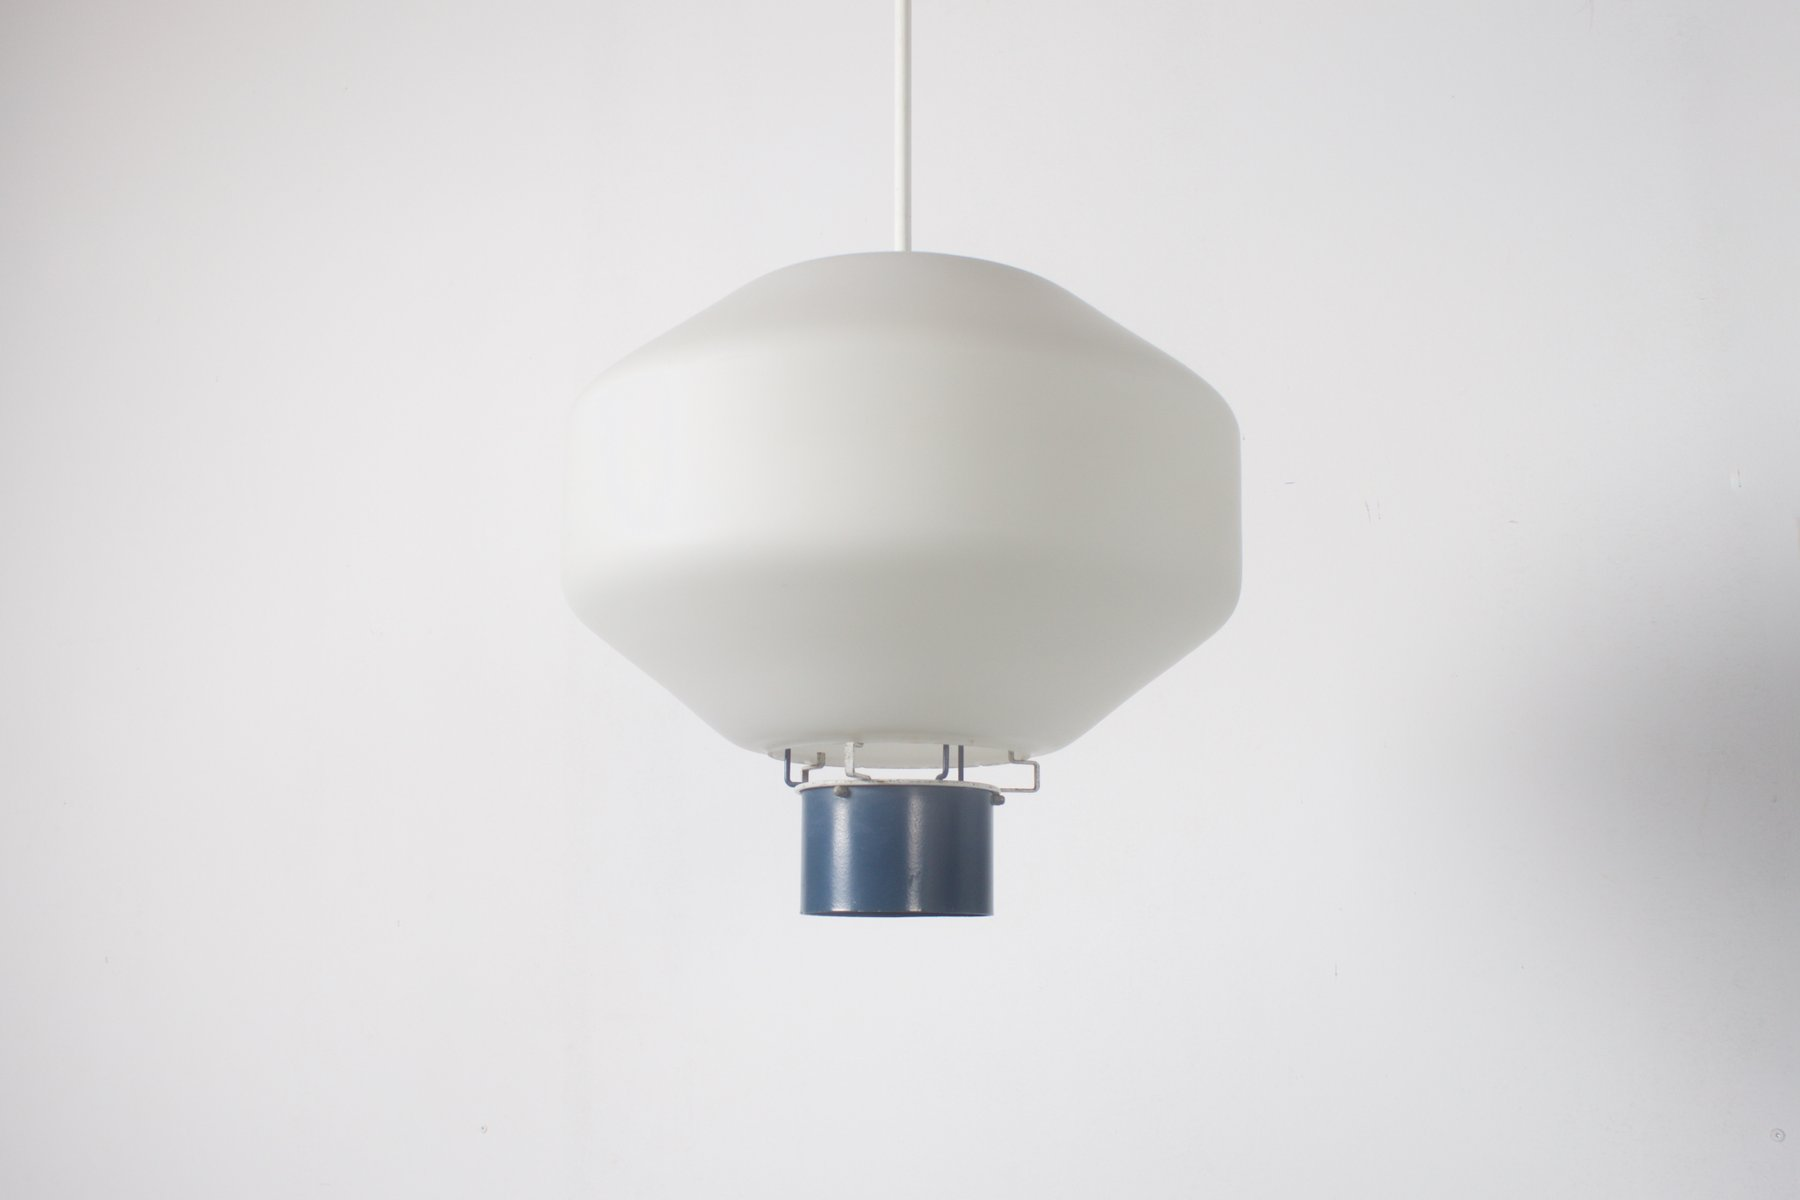 new vvp bz photos clubanfi of industrial architectural pendant by com bronze best led dorado lighting